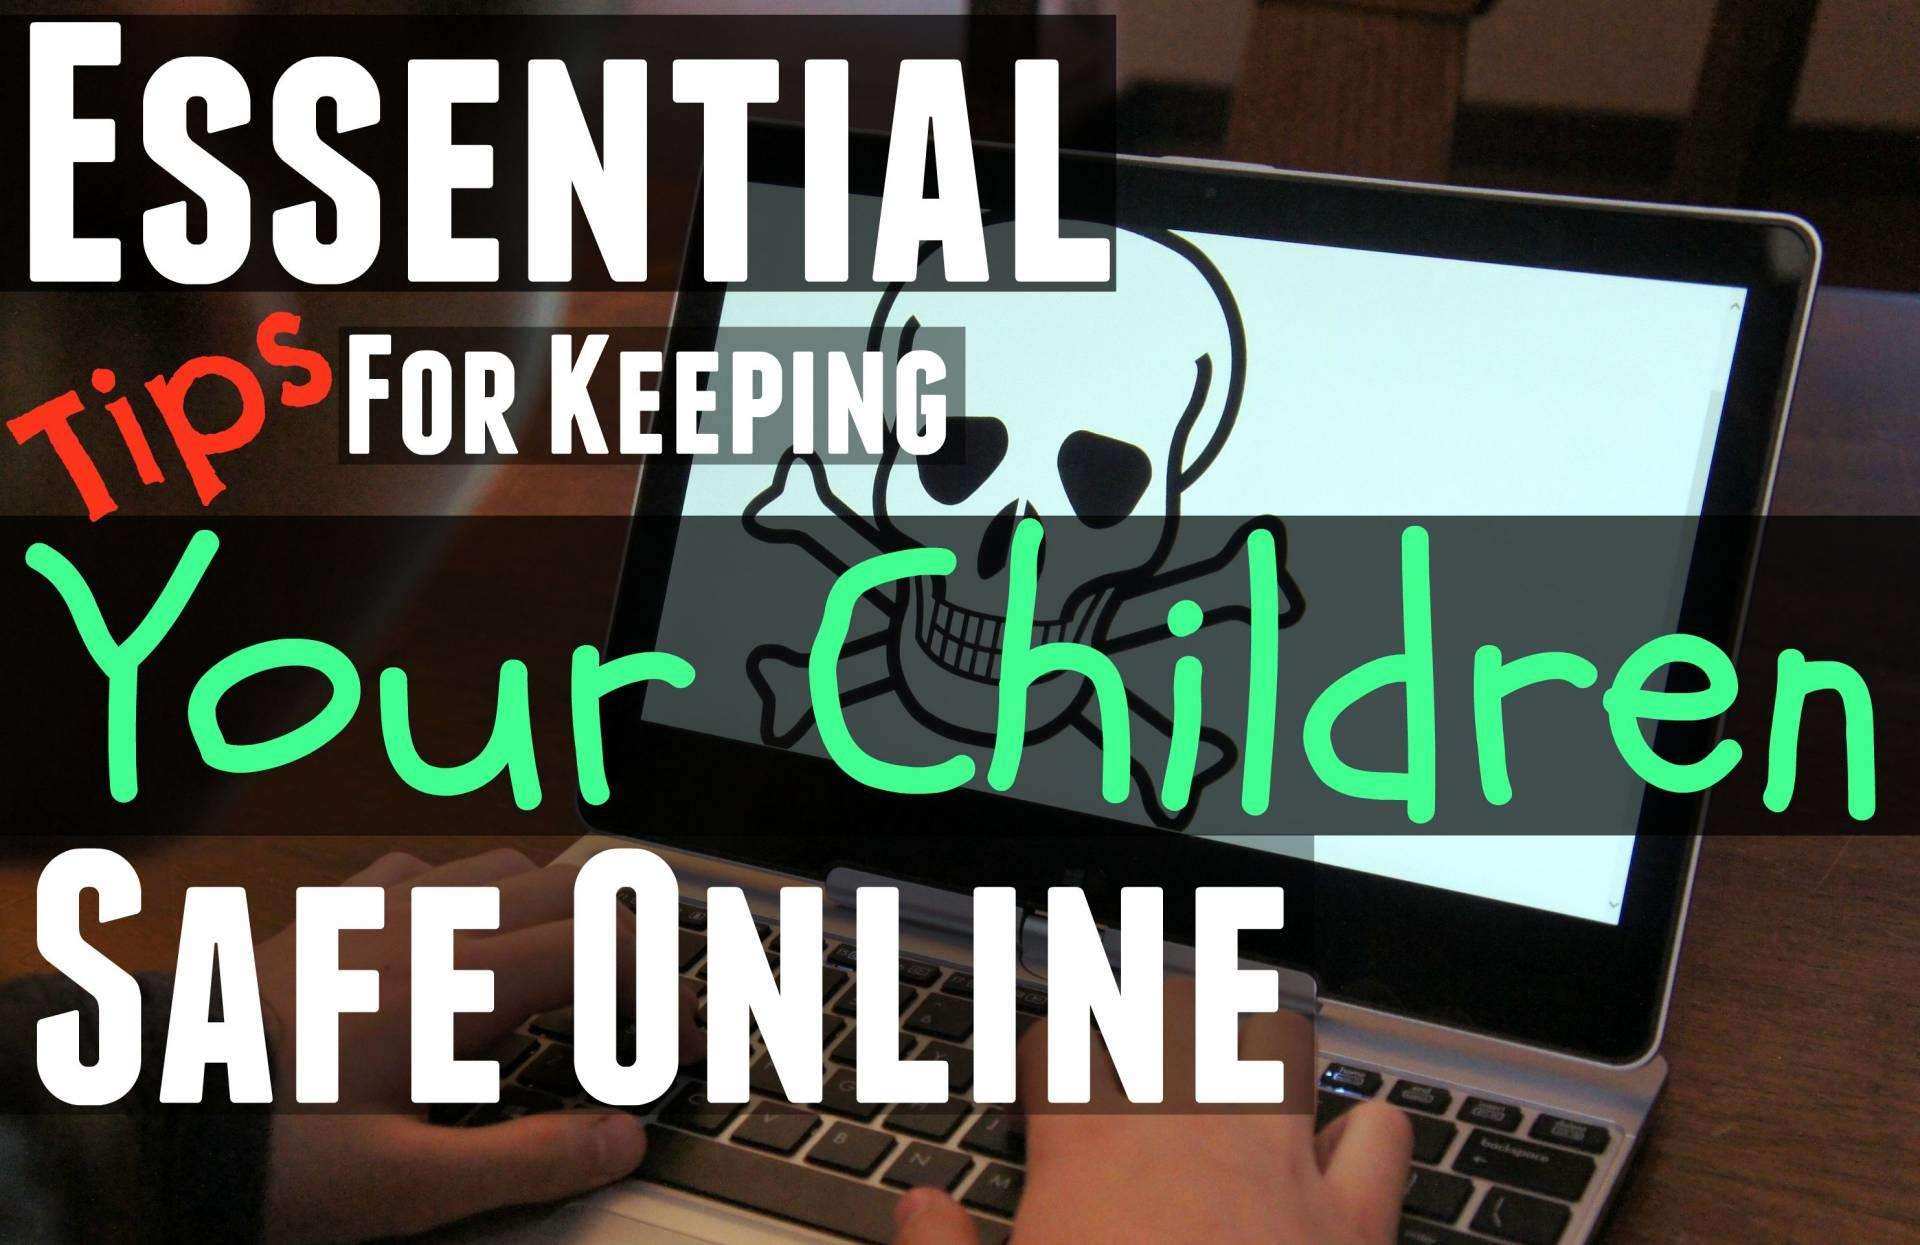 Essential Tips for Keeping Your Children Safe Online, Children safe online%, health, 6-9%